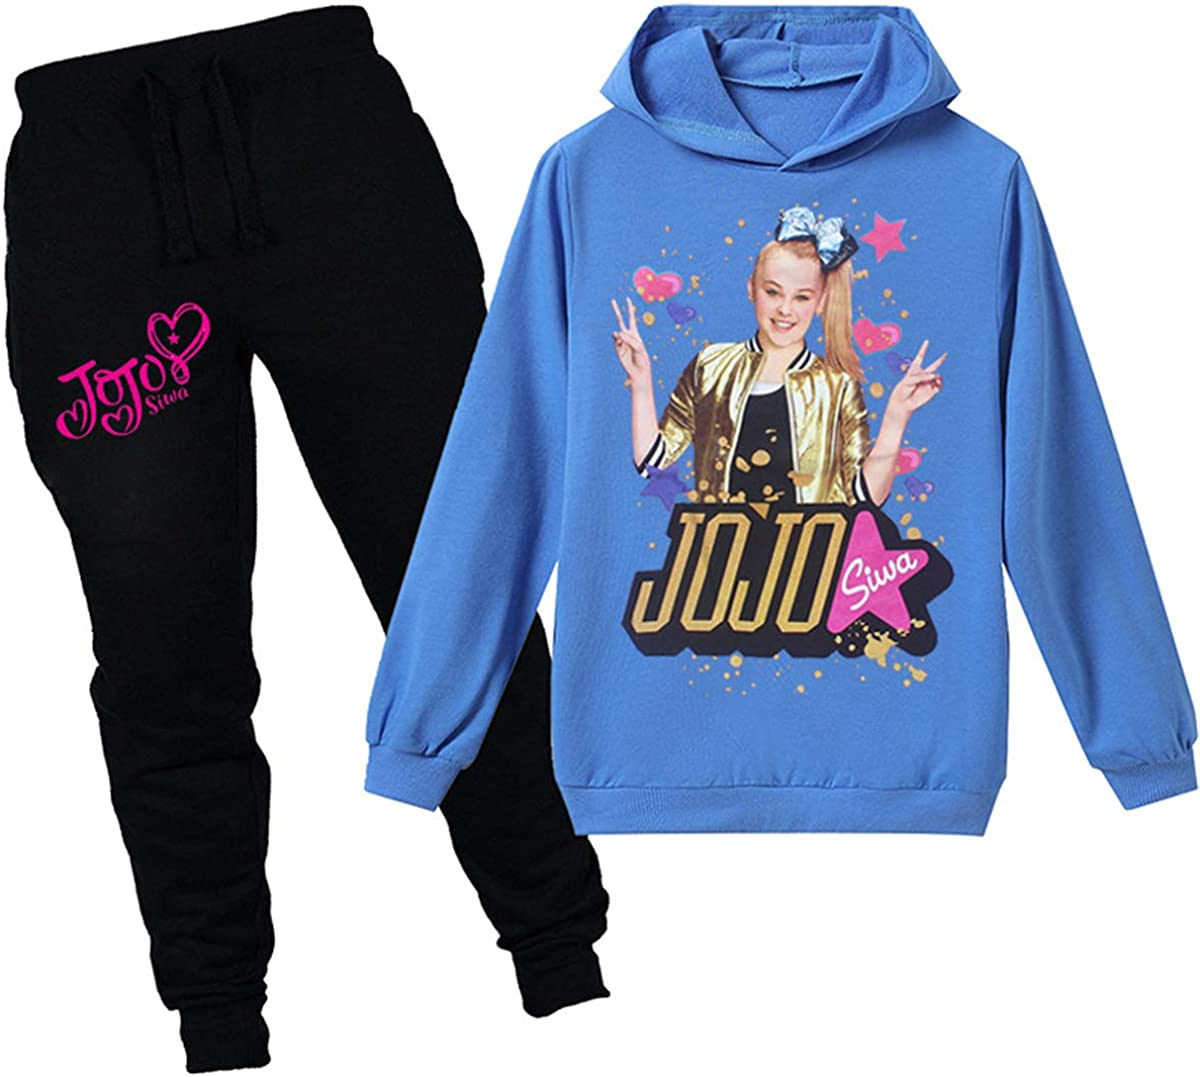 Coo-kid JoJo Siwa Hoodies-Girls Fashion Hoody Cute Sweatshirt Hoodies and Pants